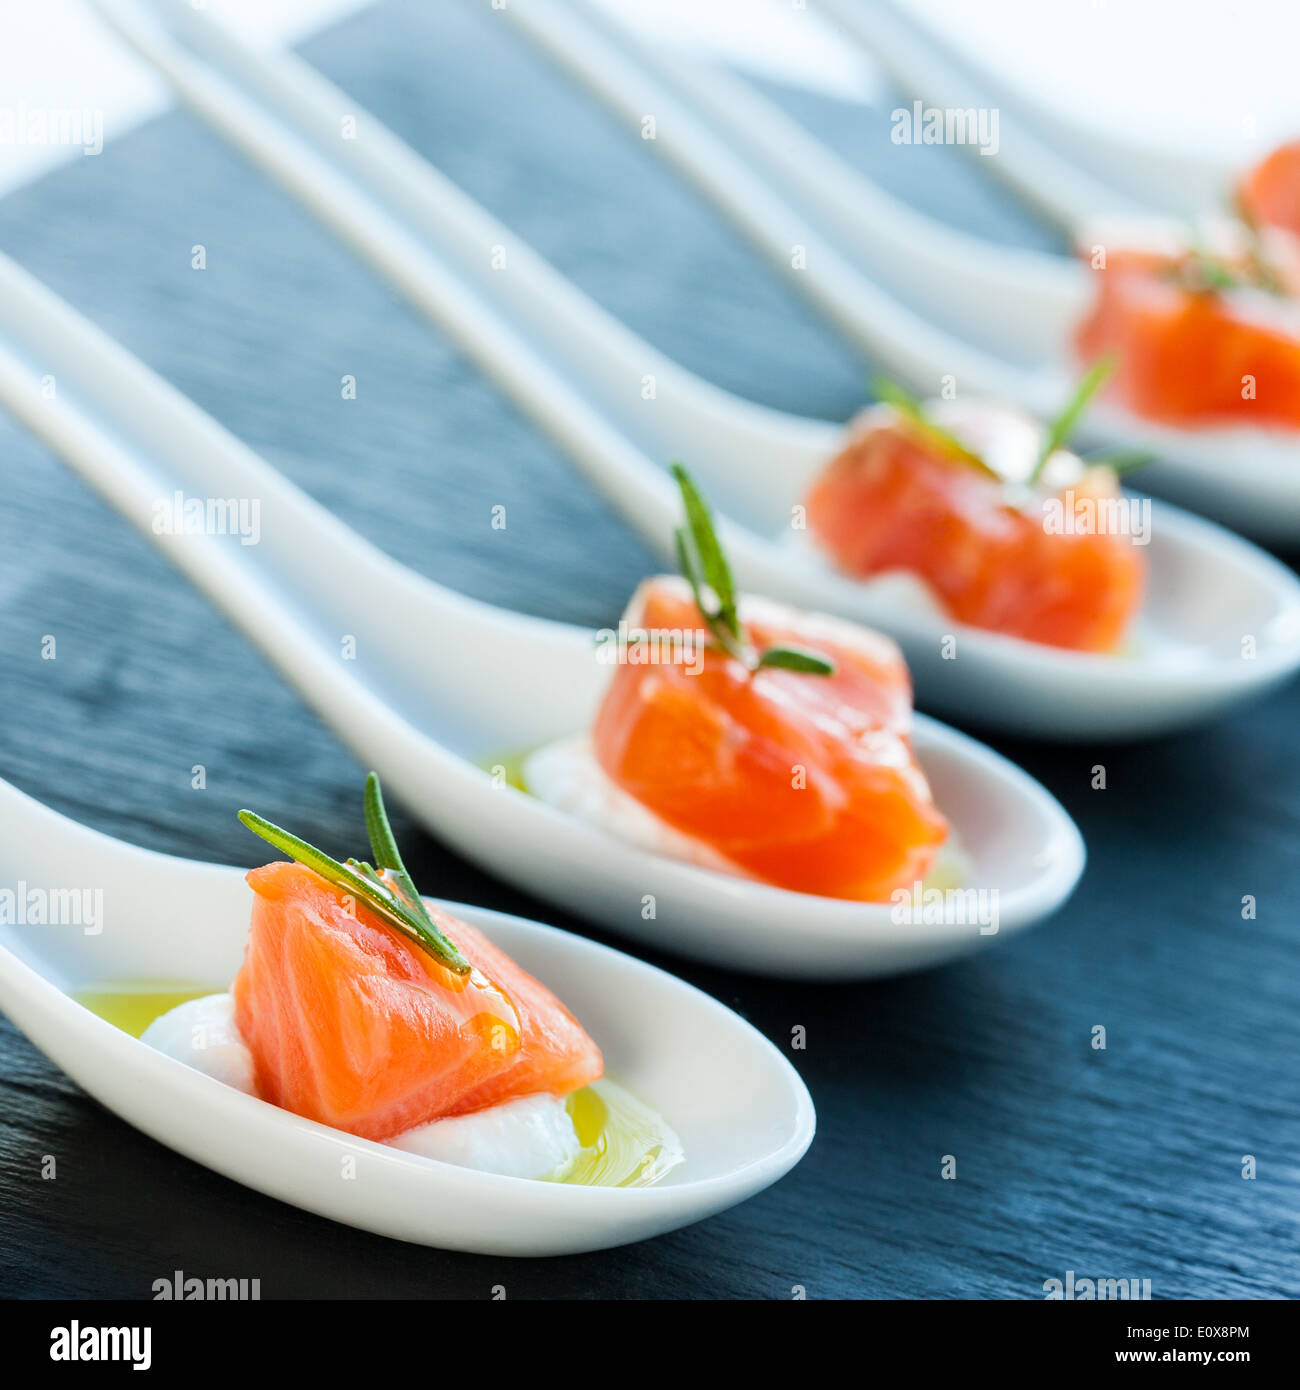 Numerous porcelain spoons with smoked salmon morsels. - Stock Image